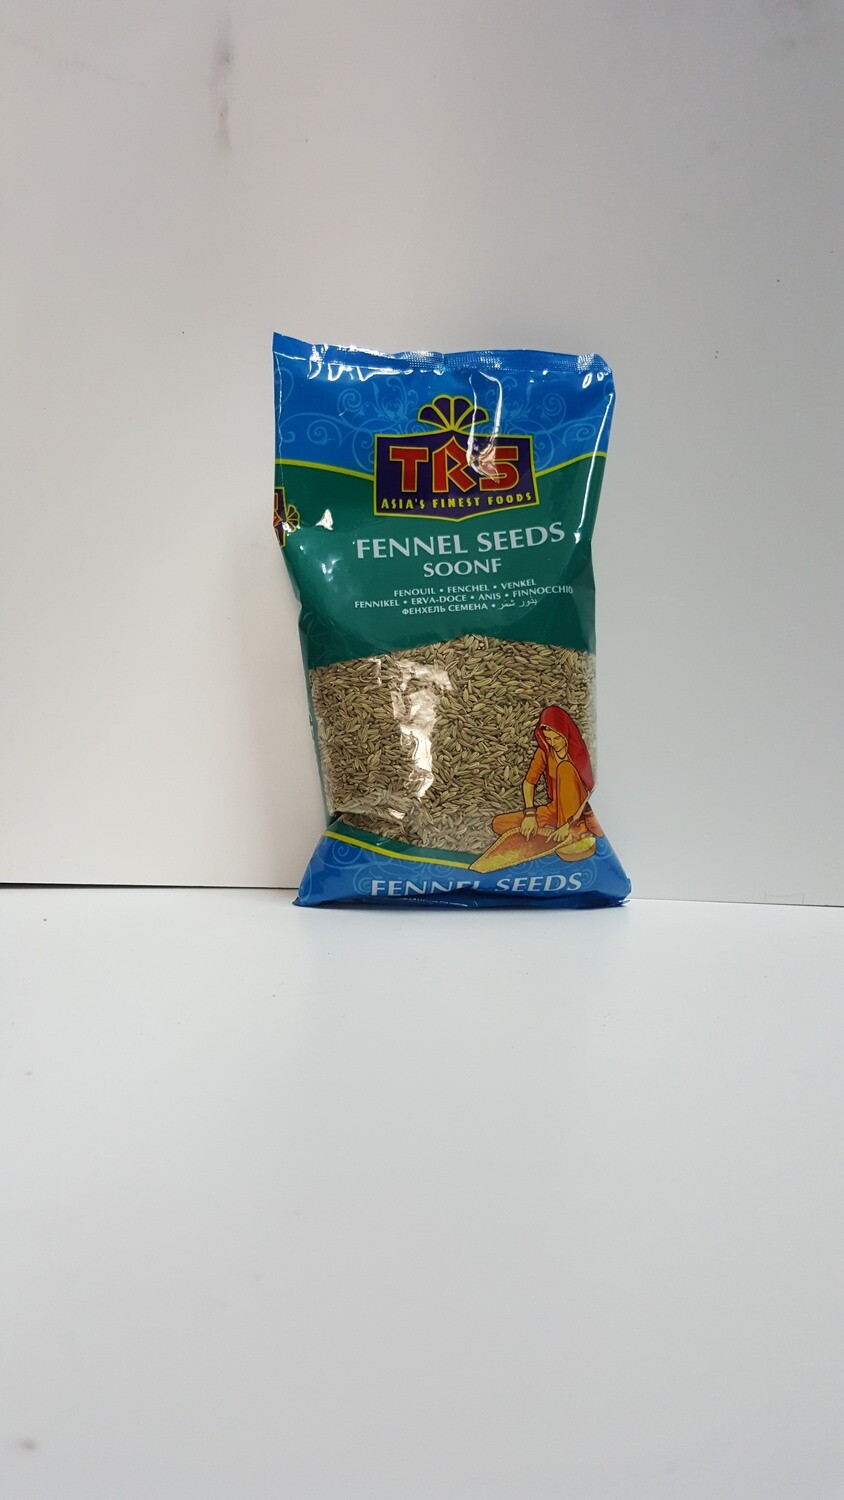 Fennel Seeds Soonf TRS 400 g